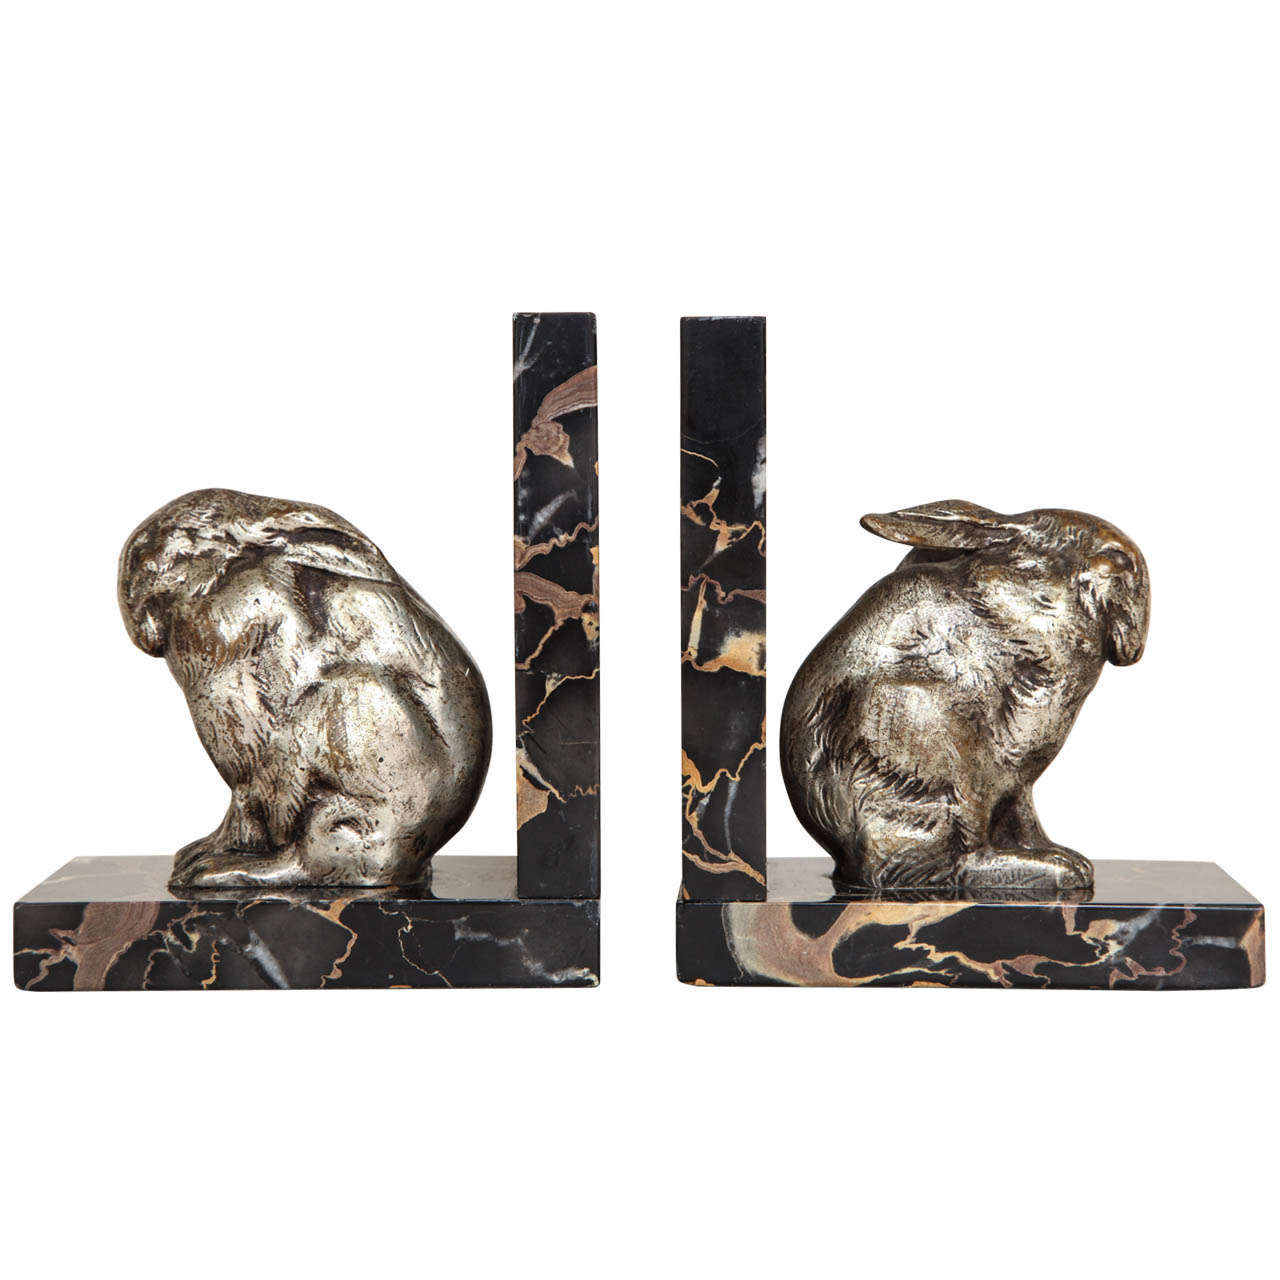 art deco pair of silvered bronze and portor marble bookends at stdibs - art deco pair of silvered bronze and portor marble bookends